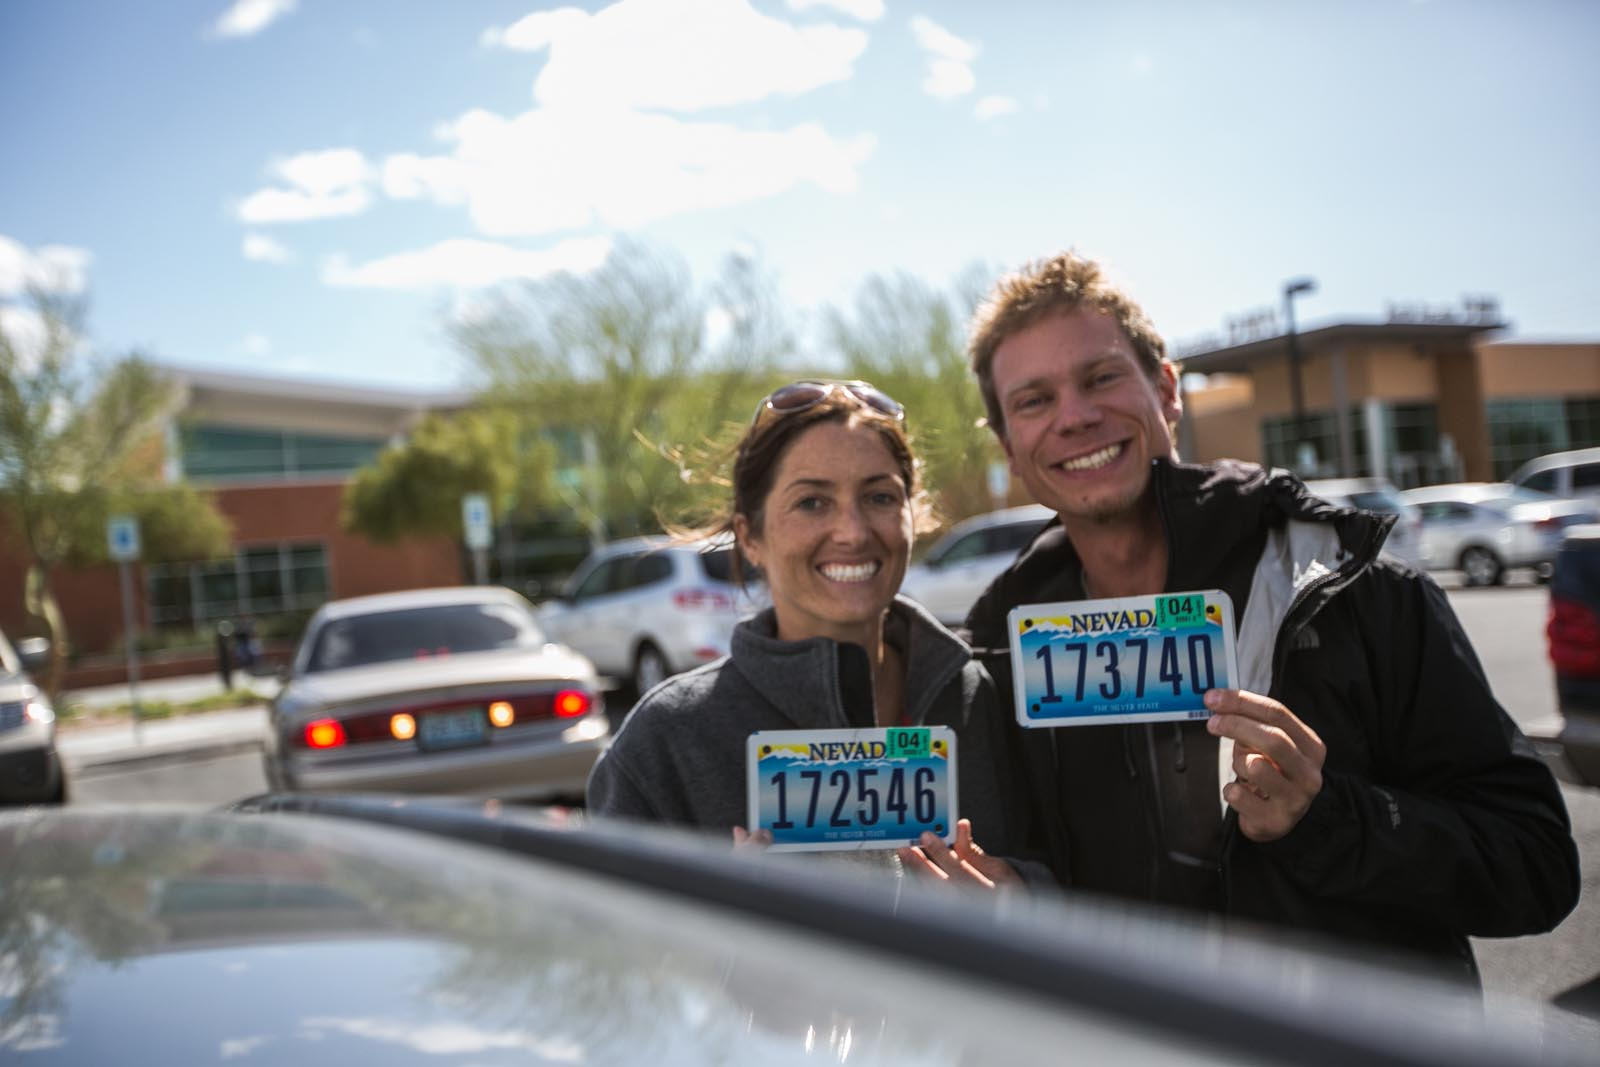 Proud new owners of two Nevada license plates -- woot!